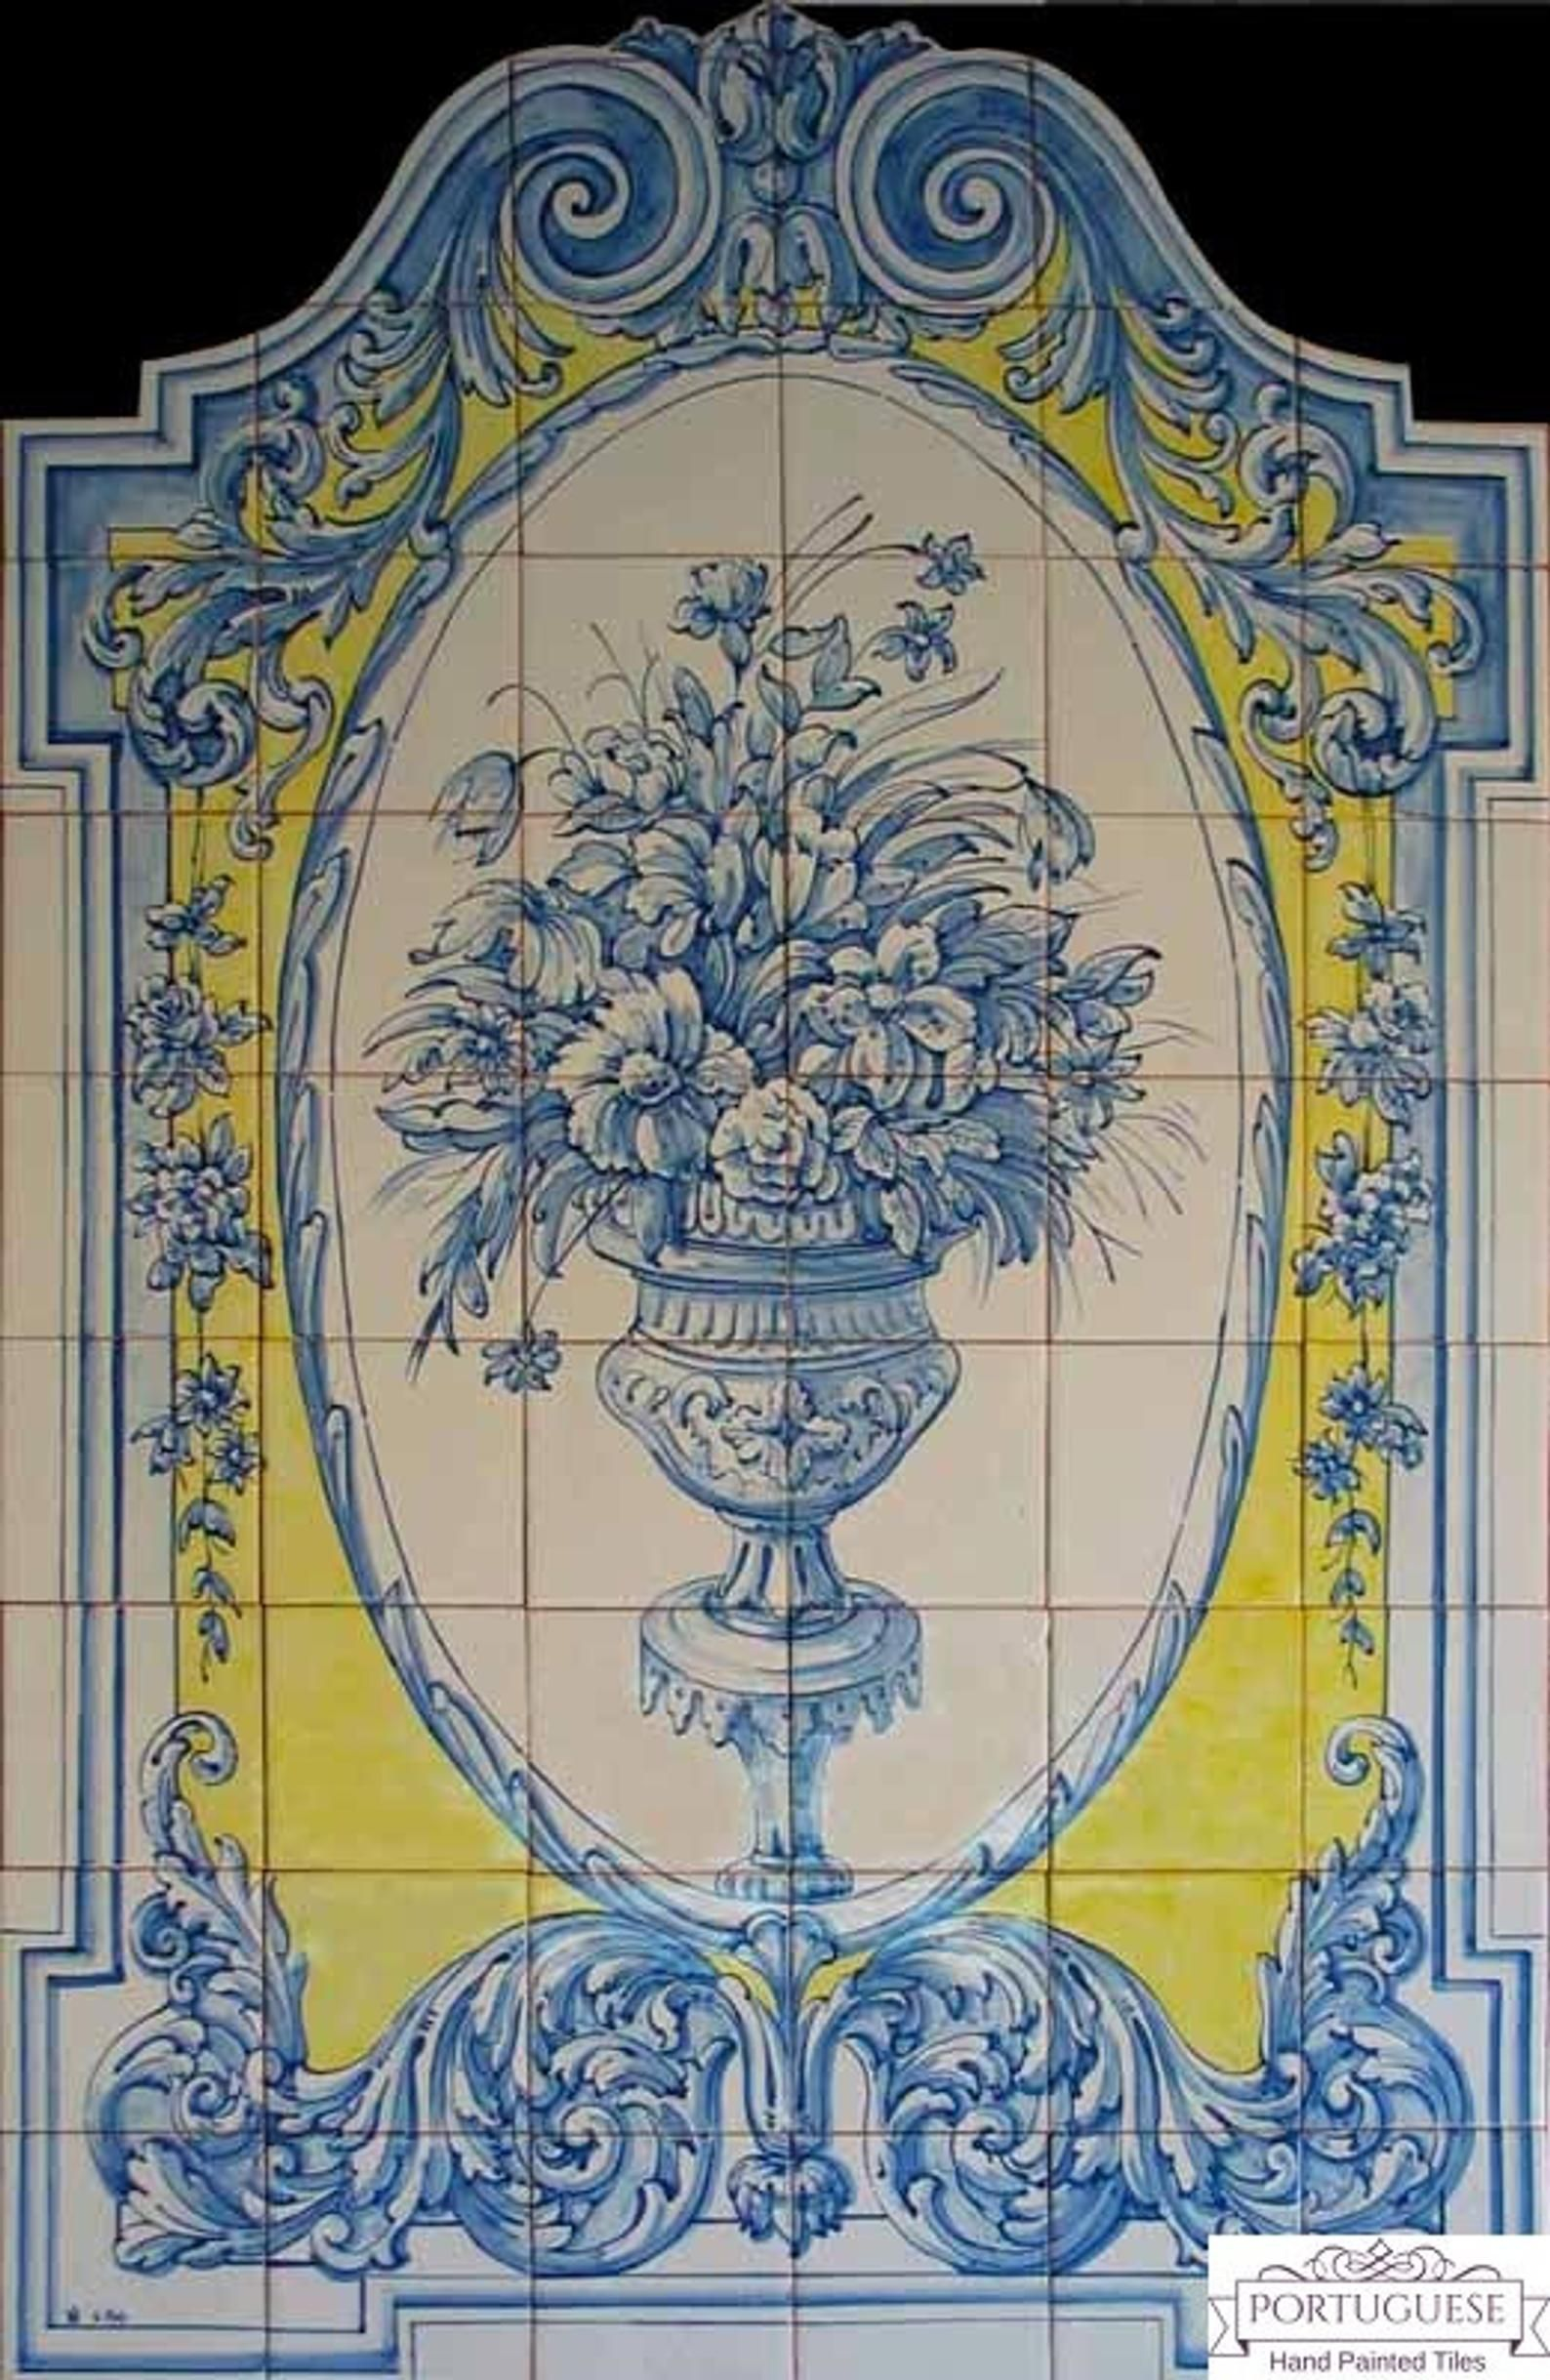 Portuguese Tiles Azulejos 55.1 X 35.4 BLUE Etsy in 2020